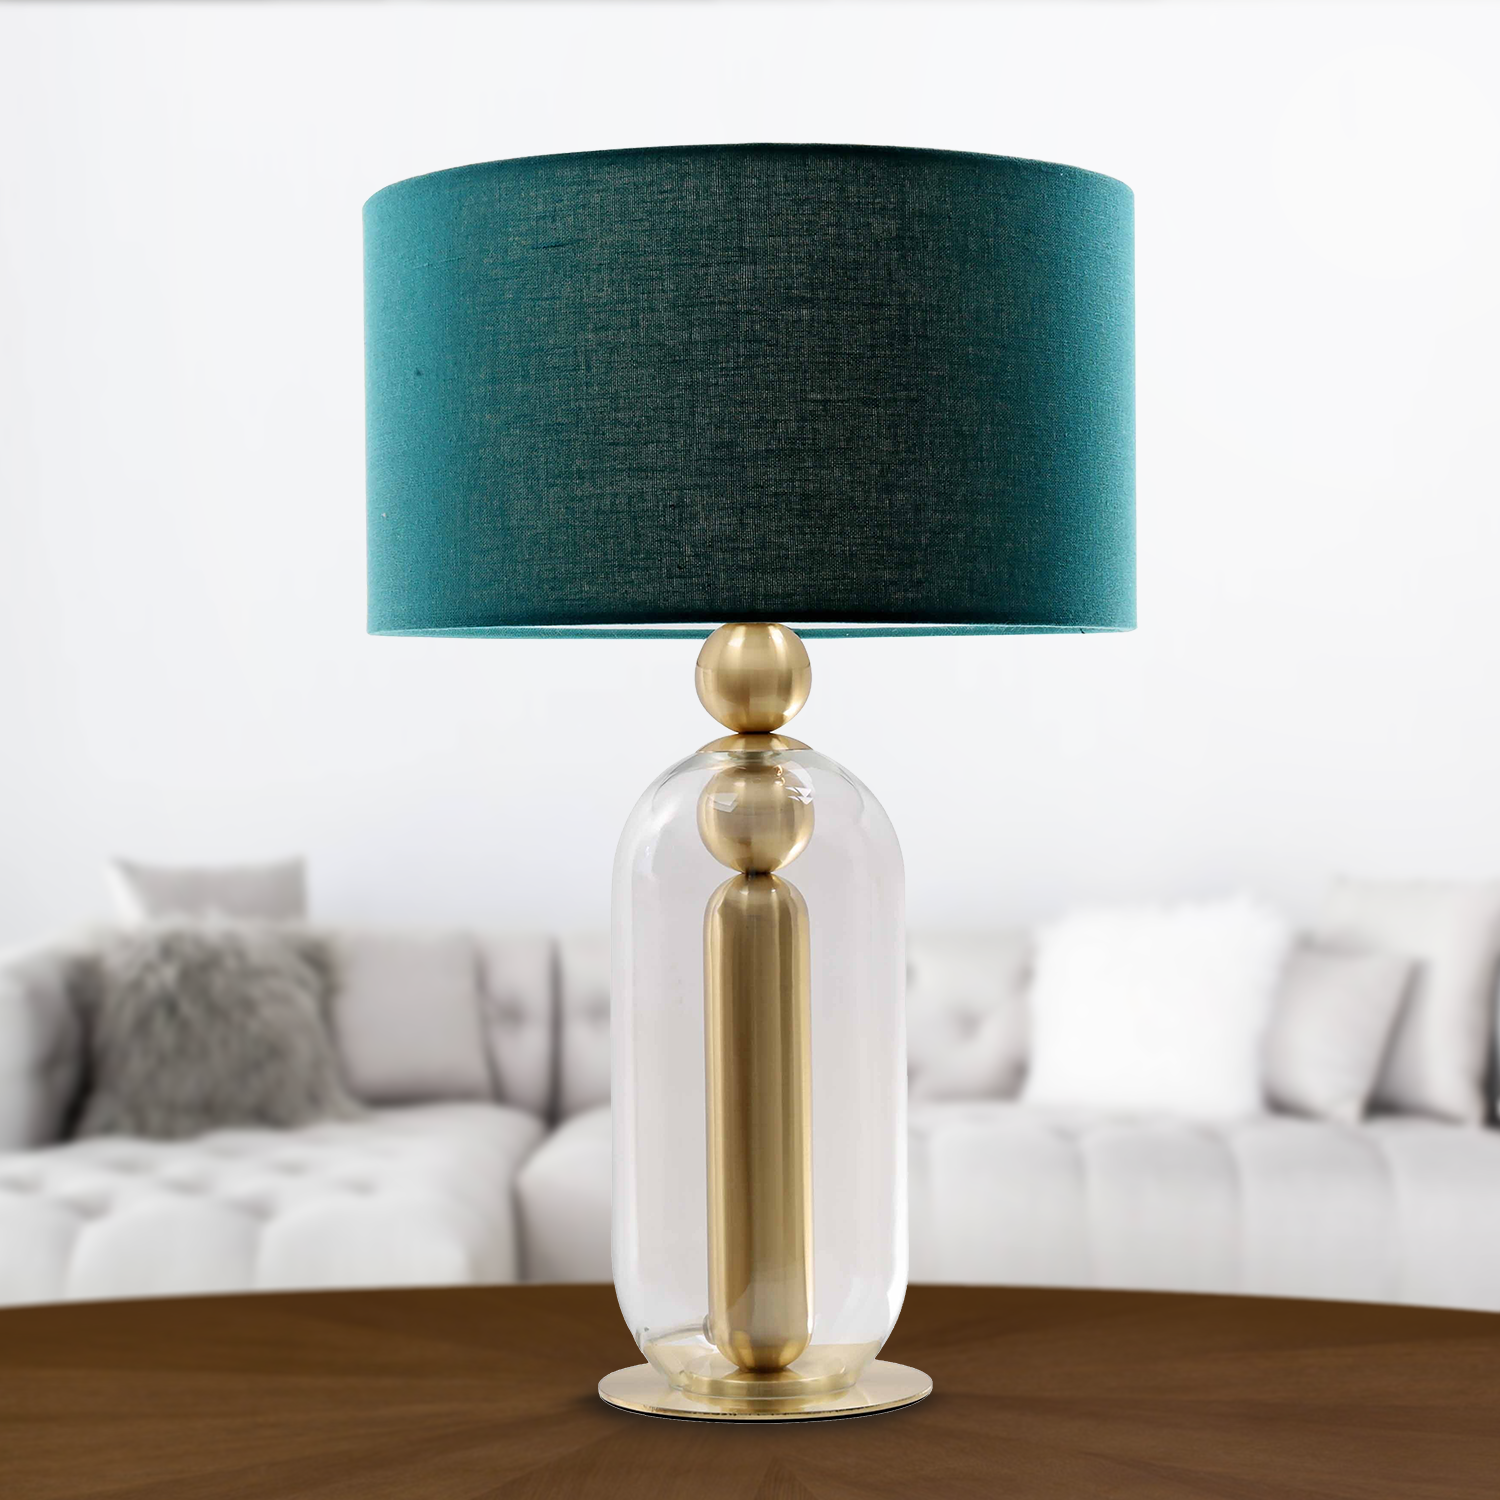 Mix and Match Lighting: Table Lamp Bases